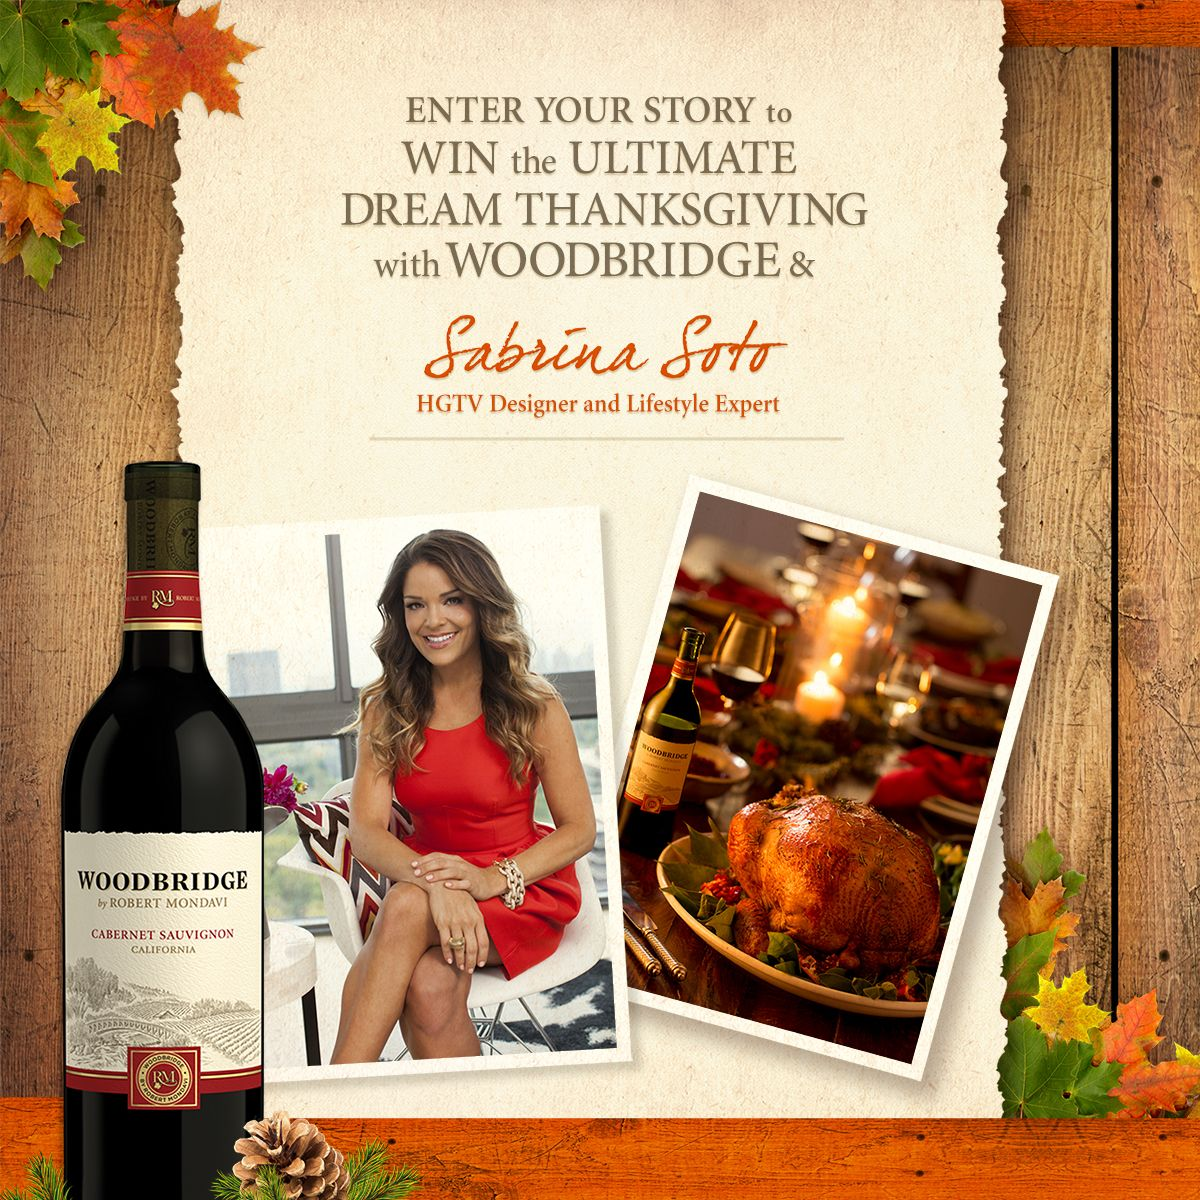 We're excited to launch our #DreamThanksgiving #contest. Would you like @hgtv designer #SabrinaSoto to visit your home and share her tips and tricks for unforgettable #holidayentertaining? If so, enter here to #win: http://bit.ly/Woodbridge_DreamThanksgiving #thanksgiving